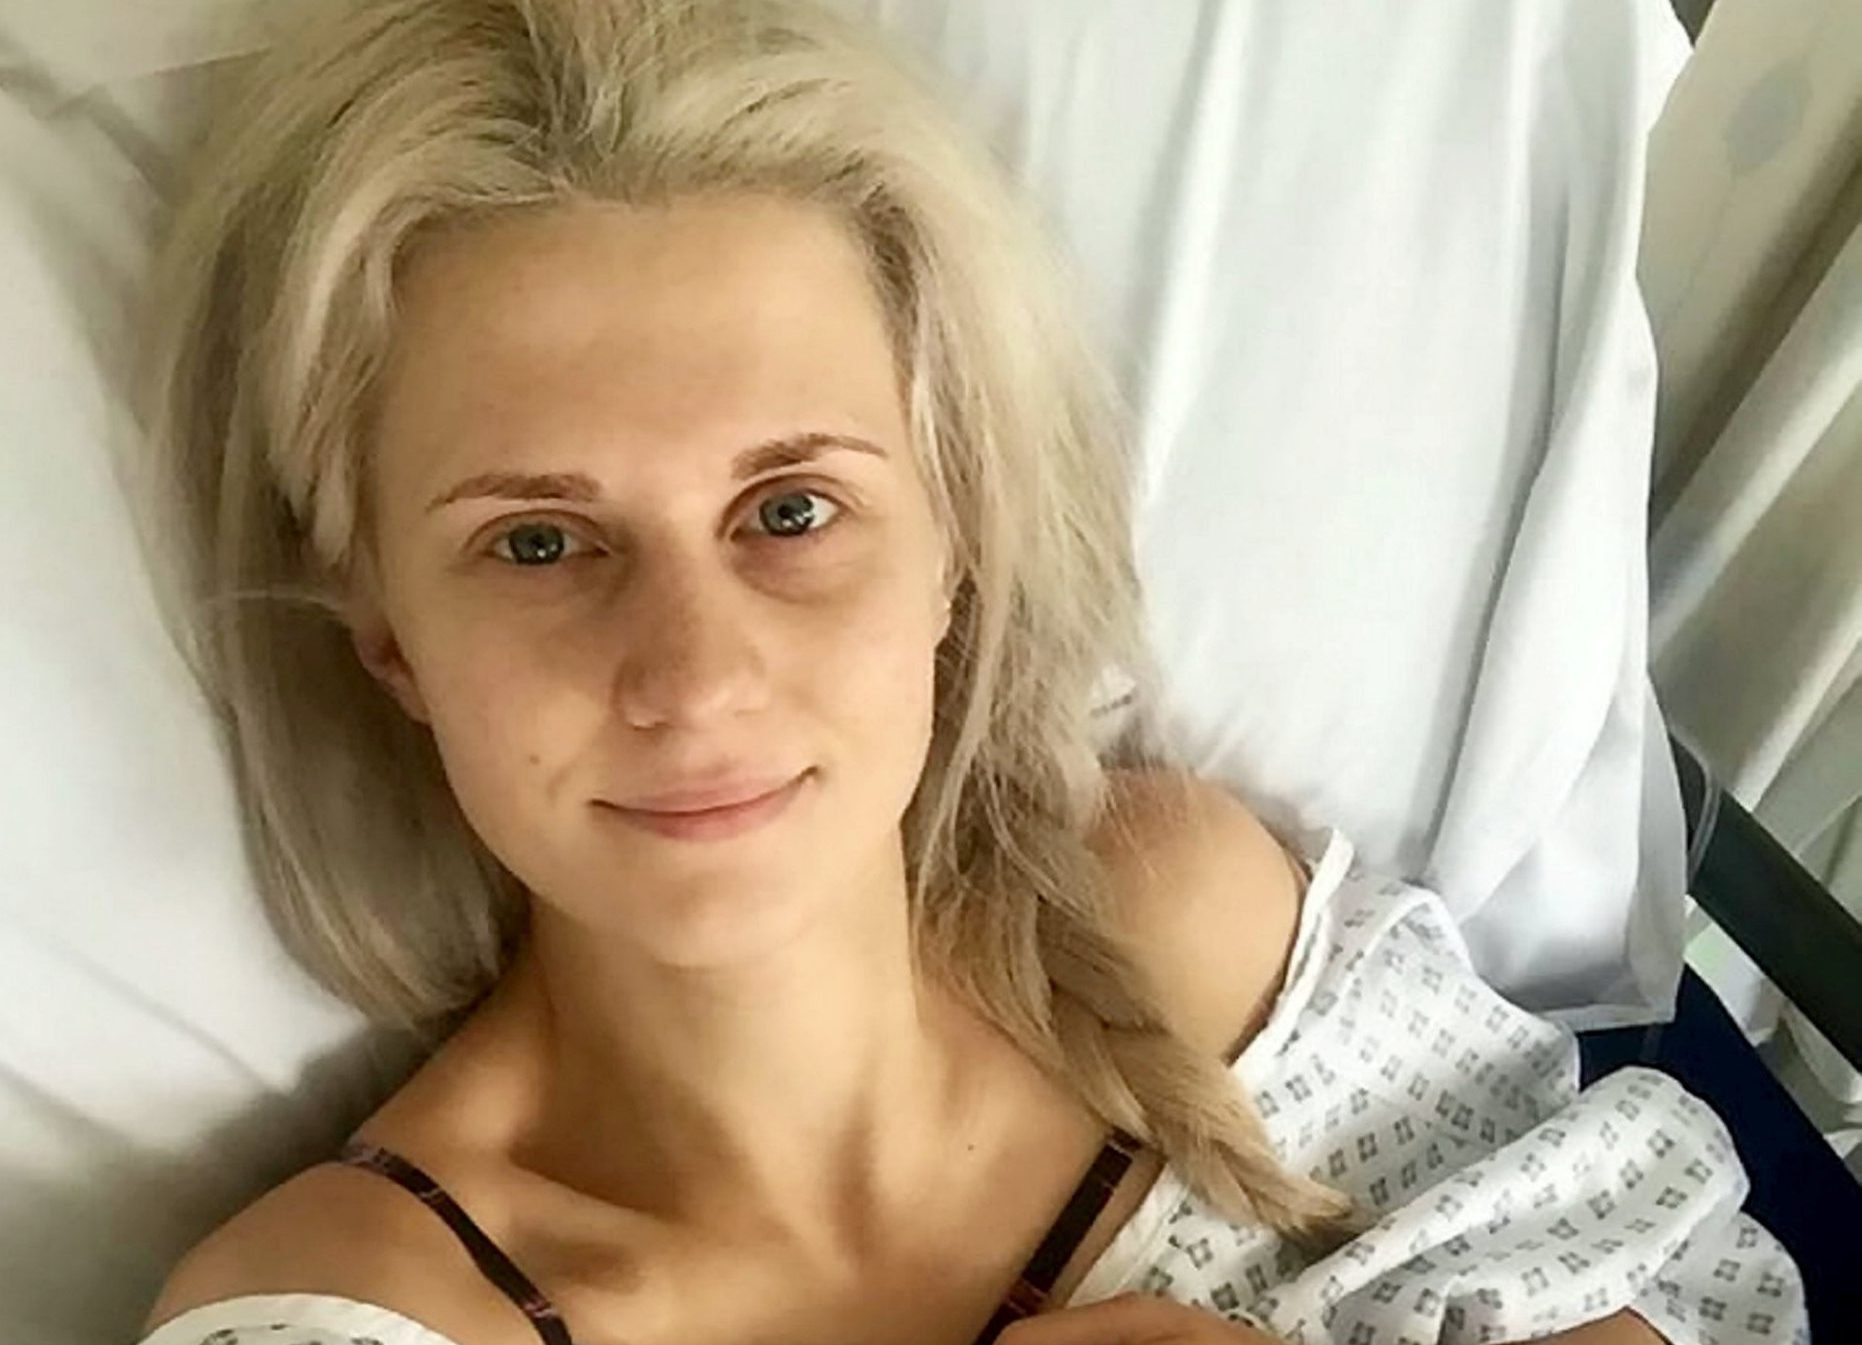 """Esther Taylor in hospital. A woman has become one of the youngest in the UK to have a double mastectomy at the age of 24 -- to beat her family?s cancer curse. See ROSS PARRY story RPYCANCER. Esther Taylor has a gene mutation meaning she is at """"high risk"""" after nine of her relatives contracted the disease. She underwent the gruelling nine-hour procedure on March 2 this year in a preventative operation to beat the scourge of cancer which has haunted her family. The paediatric nurse, now 25, from Preston, Lancs., has been offered support from Liberty X pop star Michelle Heaton, who also underwent the procedure. Now, Esther believes she can look with optimism to a healthy future despite many thinking she was ?too young? to make such a major decision. Blood tests revealed that she had a rogue unidentified gene, putting her at high risk for breast and ovarian cancer. It follows several members of her family being diagnosed with cancer including aunties, uncles and her mum Patsy, who was struck down in her 40s."""